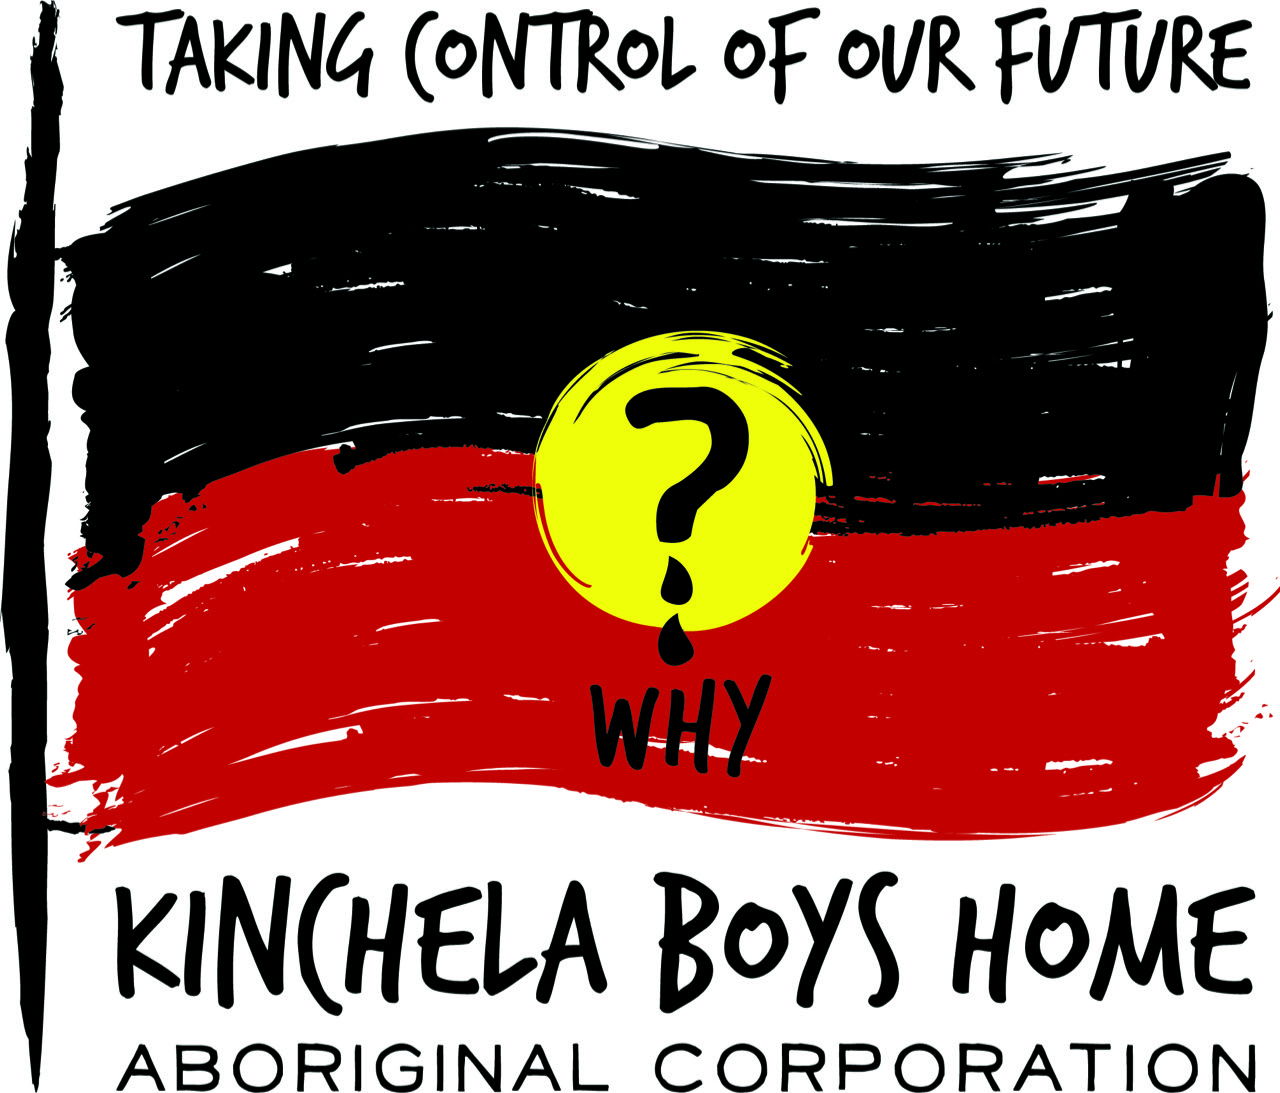 Kinchela Boys Home Aboriginal Corporation